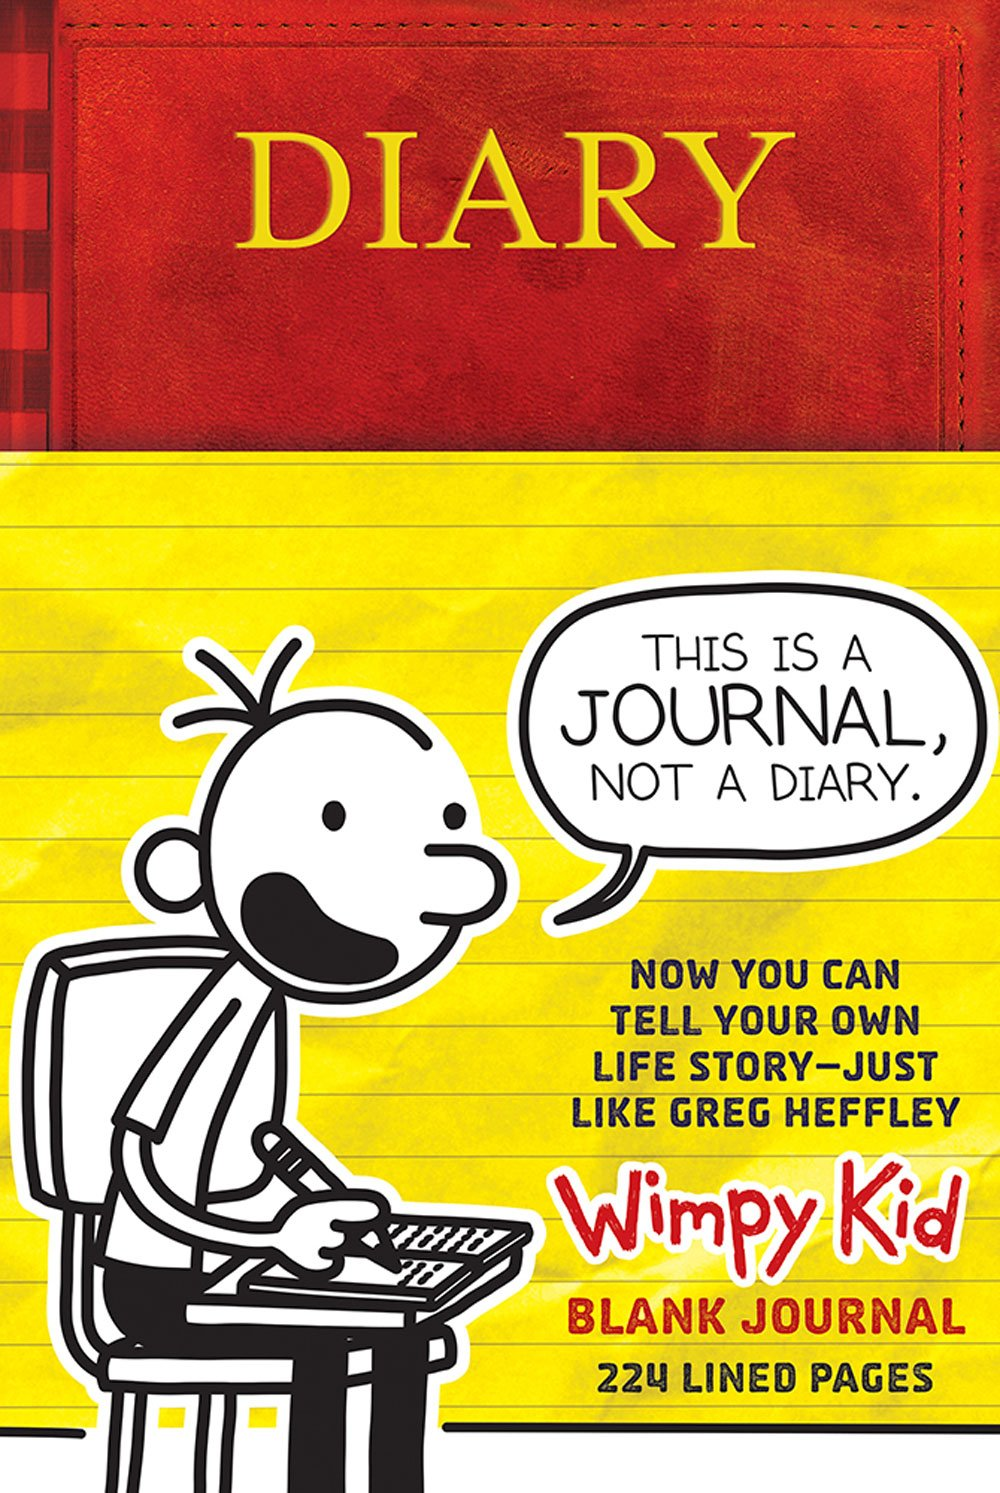 Diary of a Wimpy Kid Blank Journal kicute 1pcs leather diaries journal notebook secret leather diary with lock password lined business office school supplies